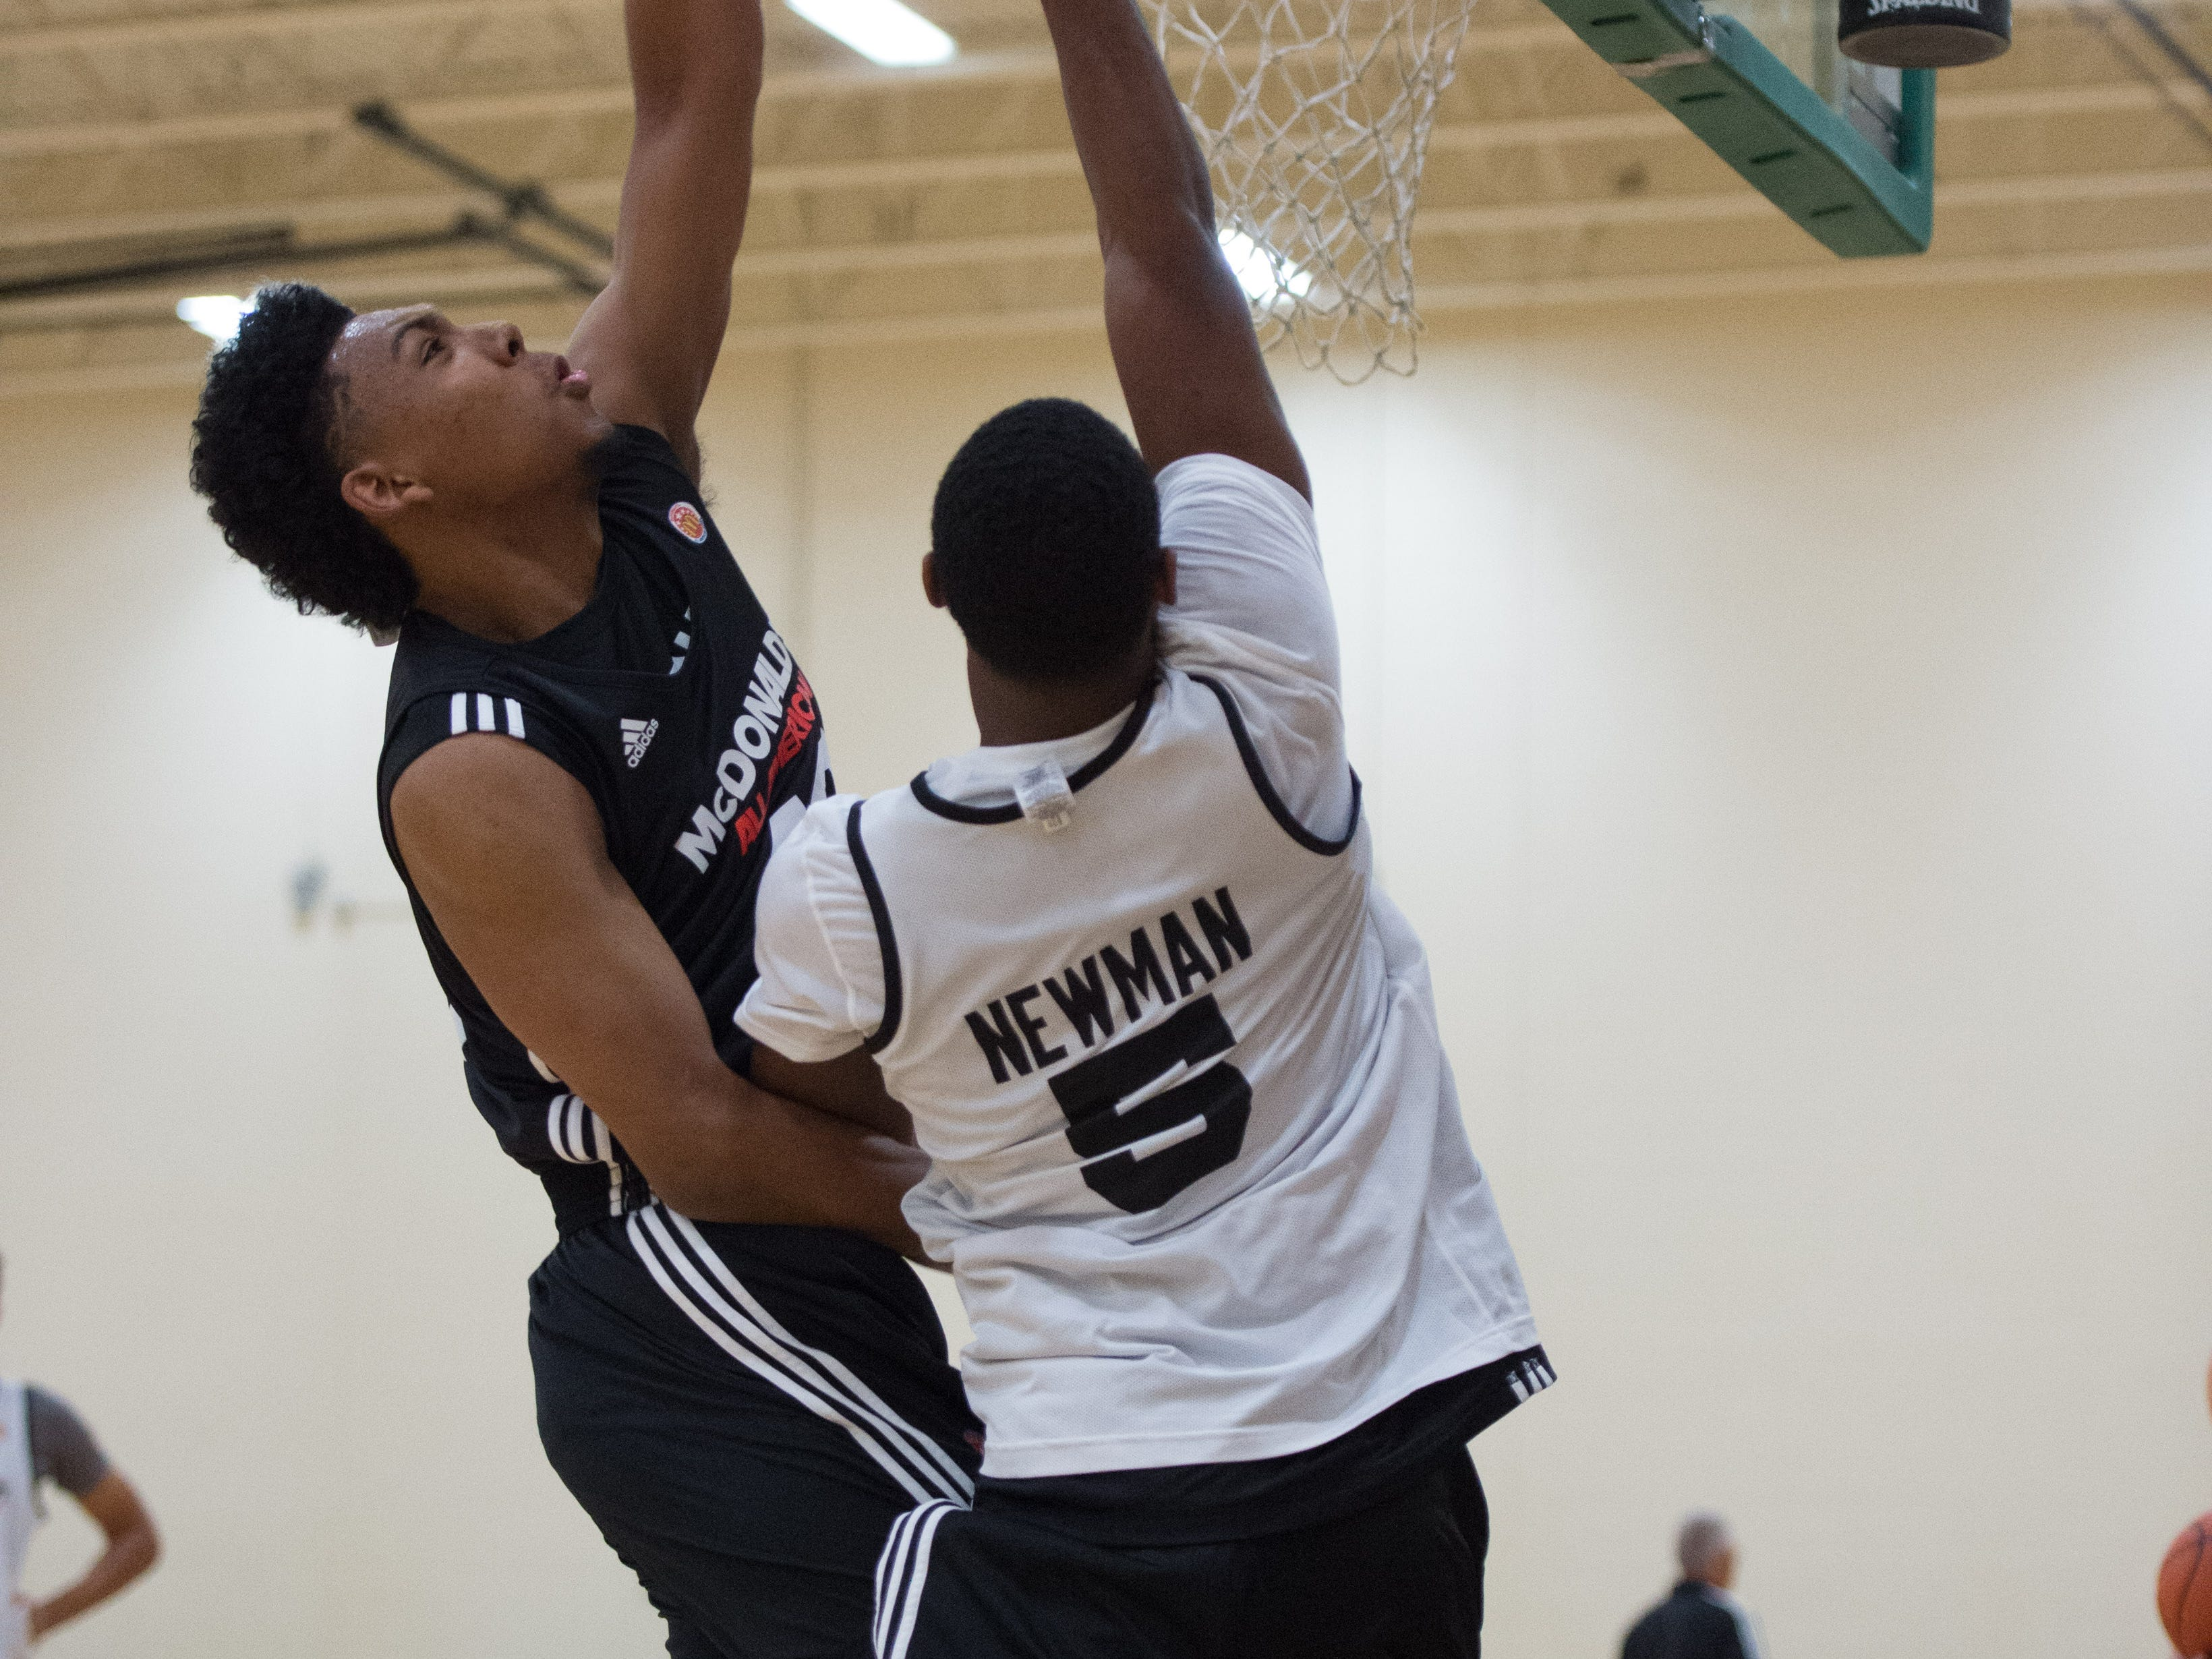 Callaway's Malik Newman goes up to block Arizona commit Allonzo Trier's shot during practice.